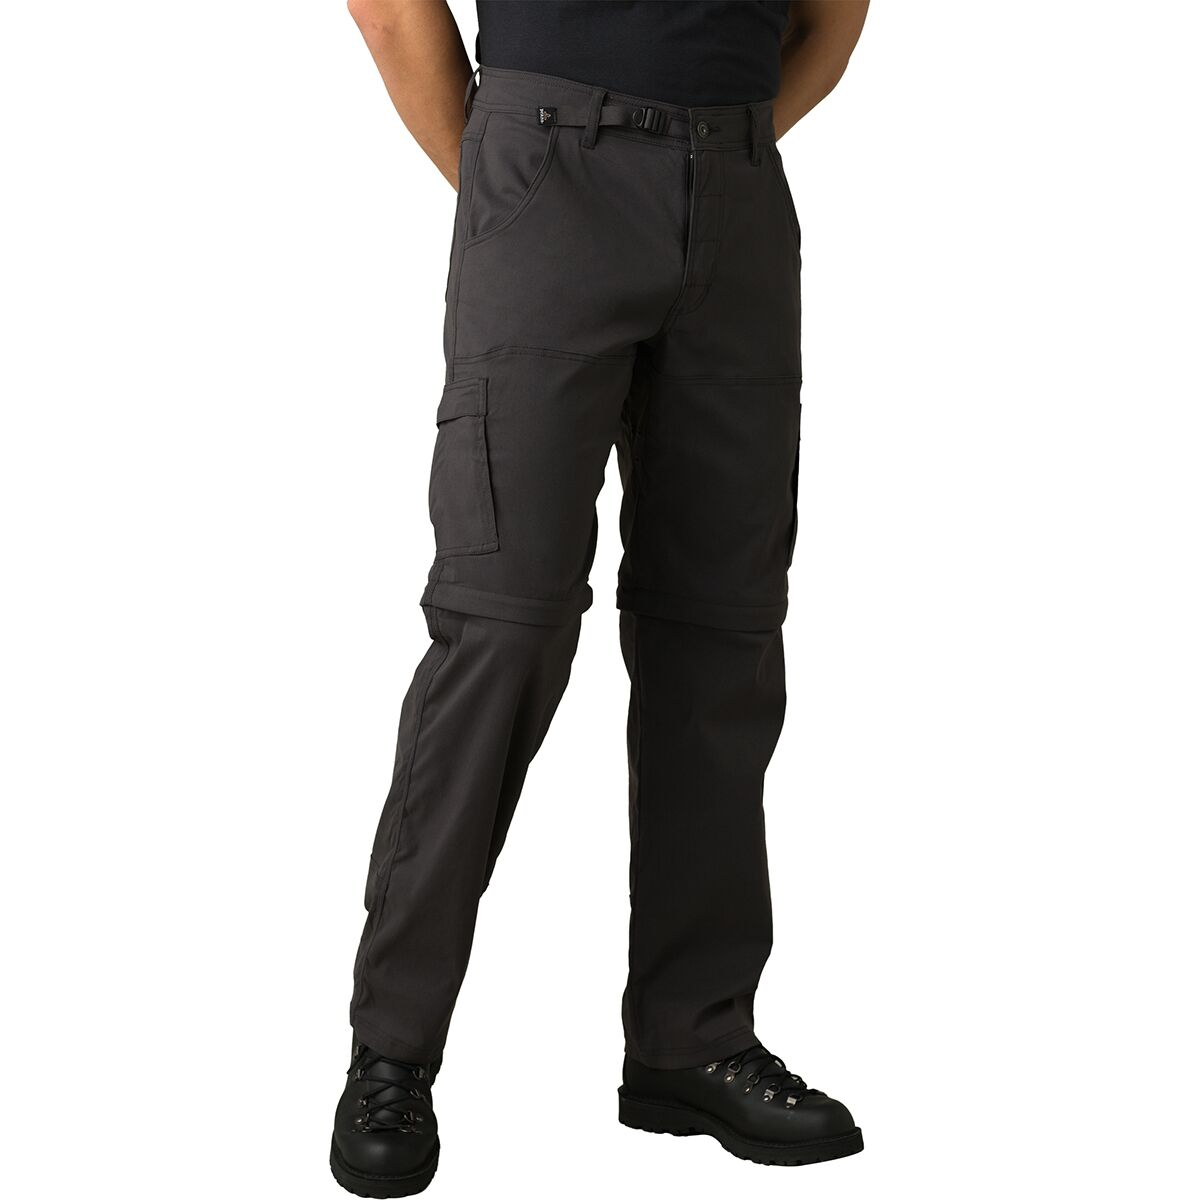 prAna Mens Stretch Zion Convertible Water-Repellent Pants for Hiking and Everyday Wear